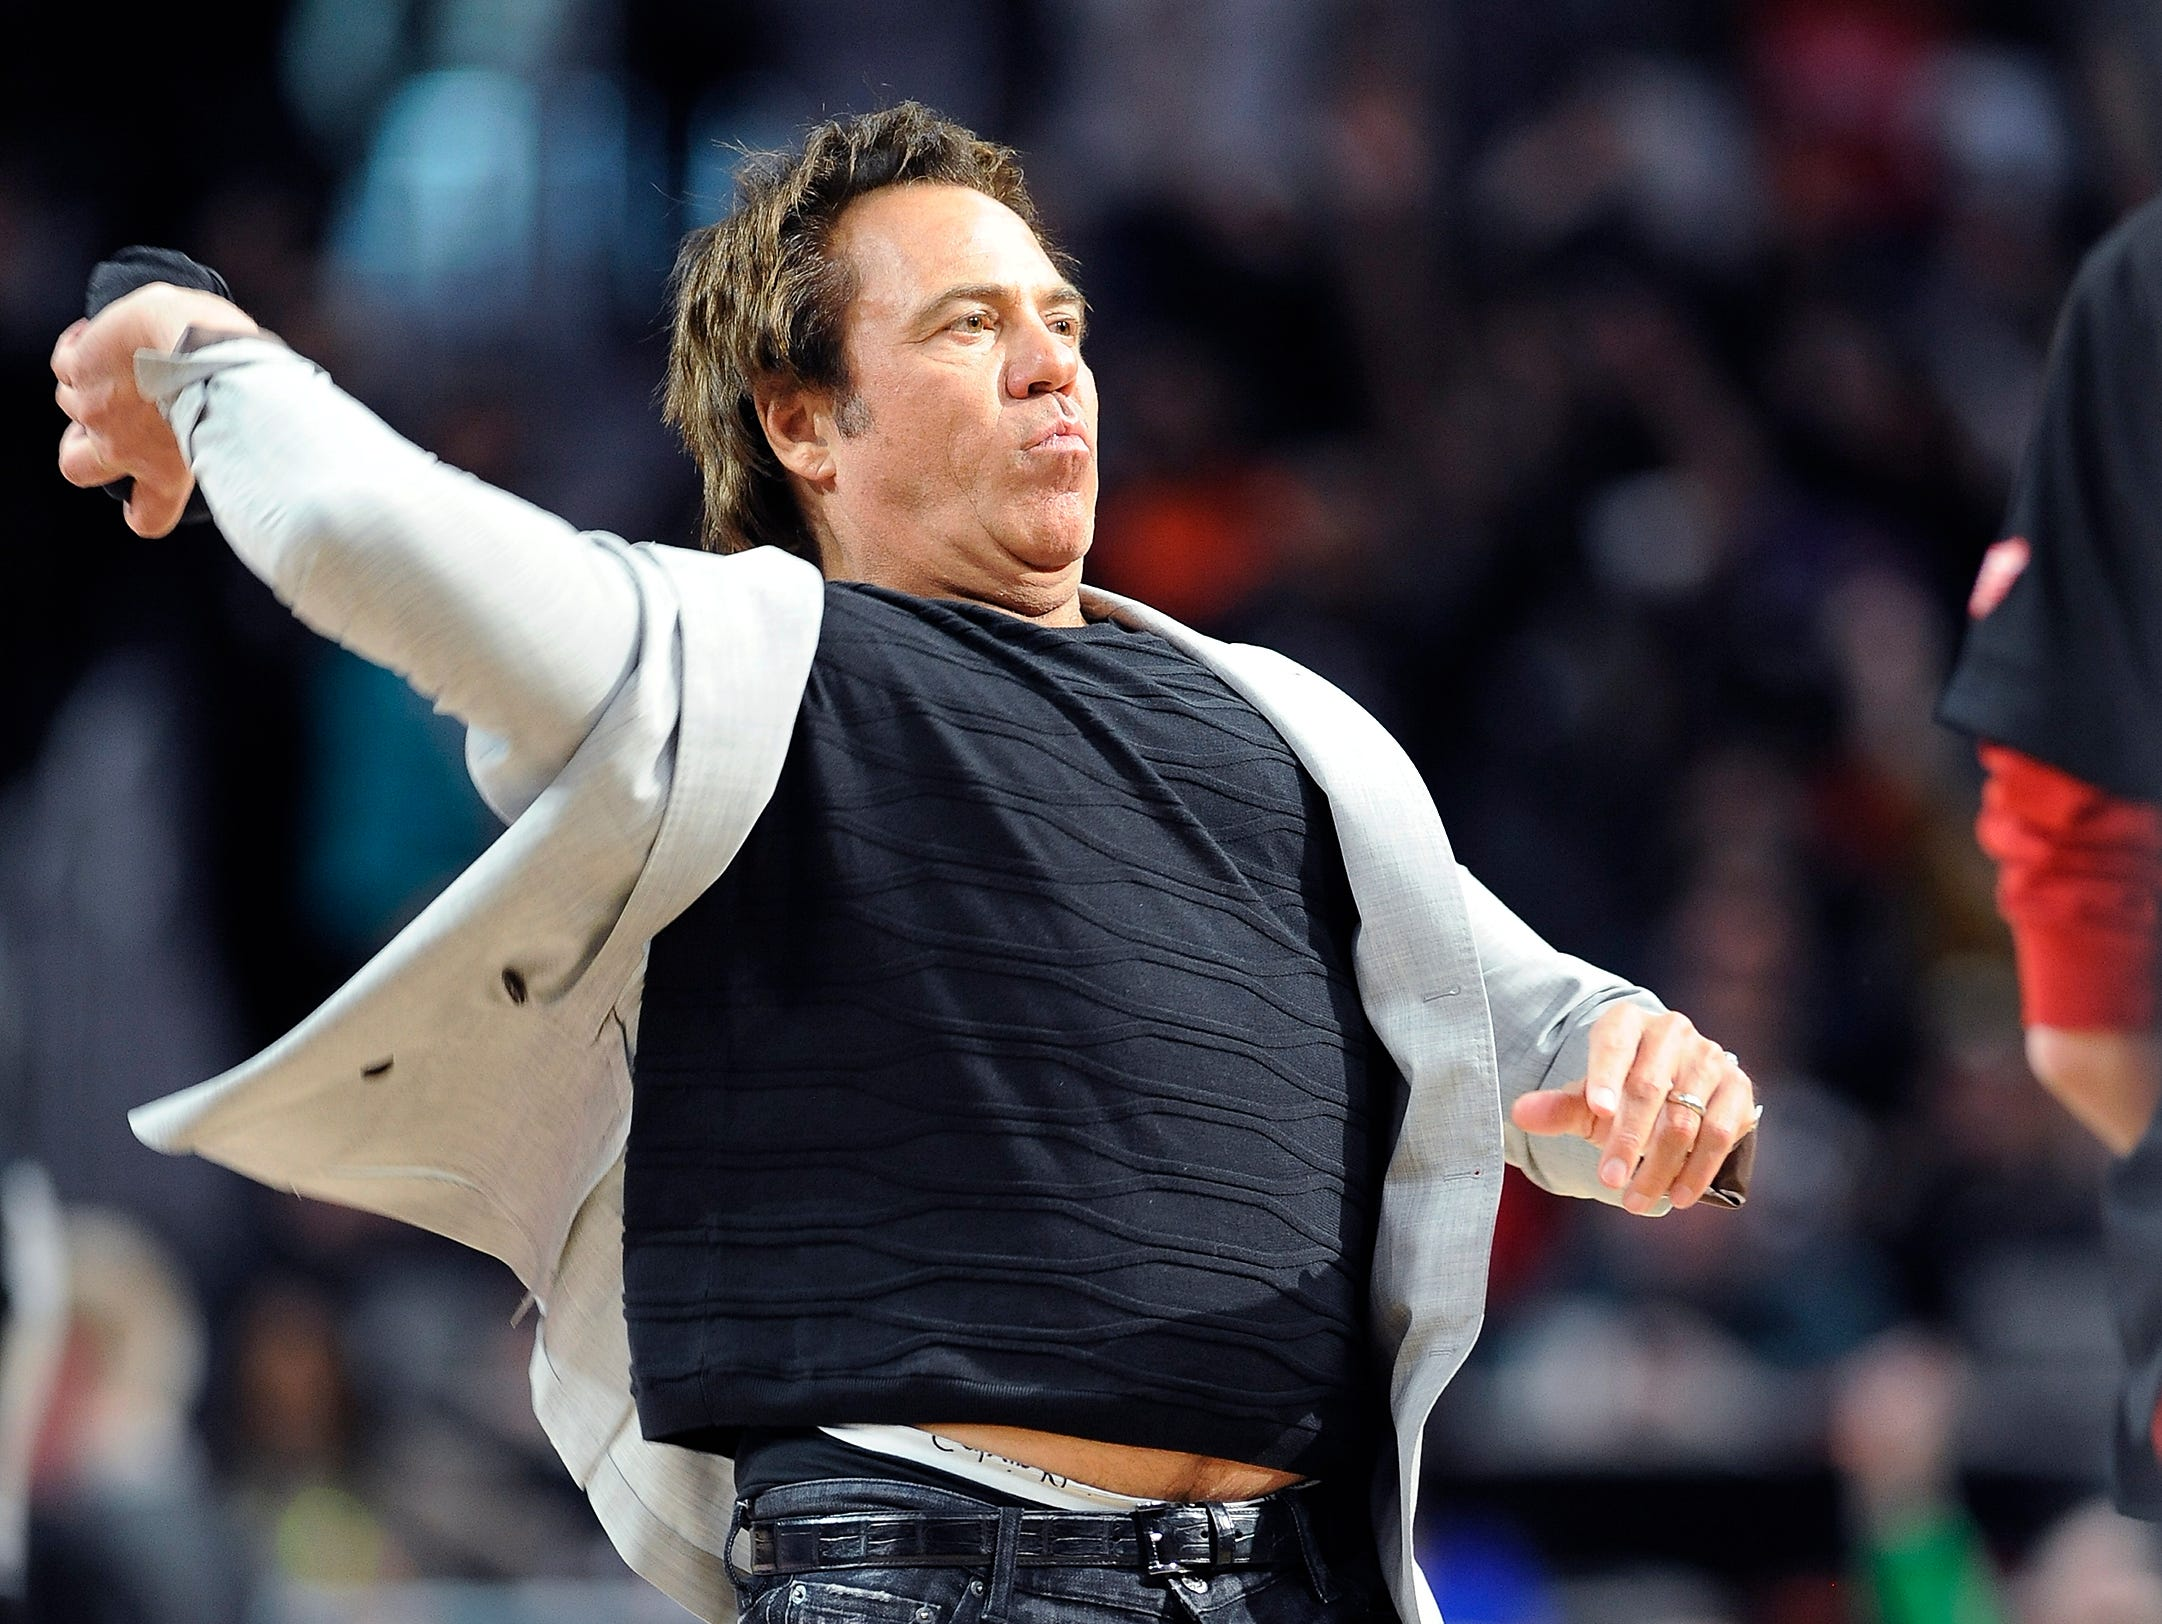 Pistons owner Tom Gores throws t-shirts to the fans in the fourth quarter.